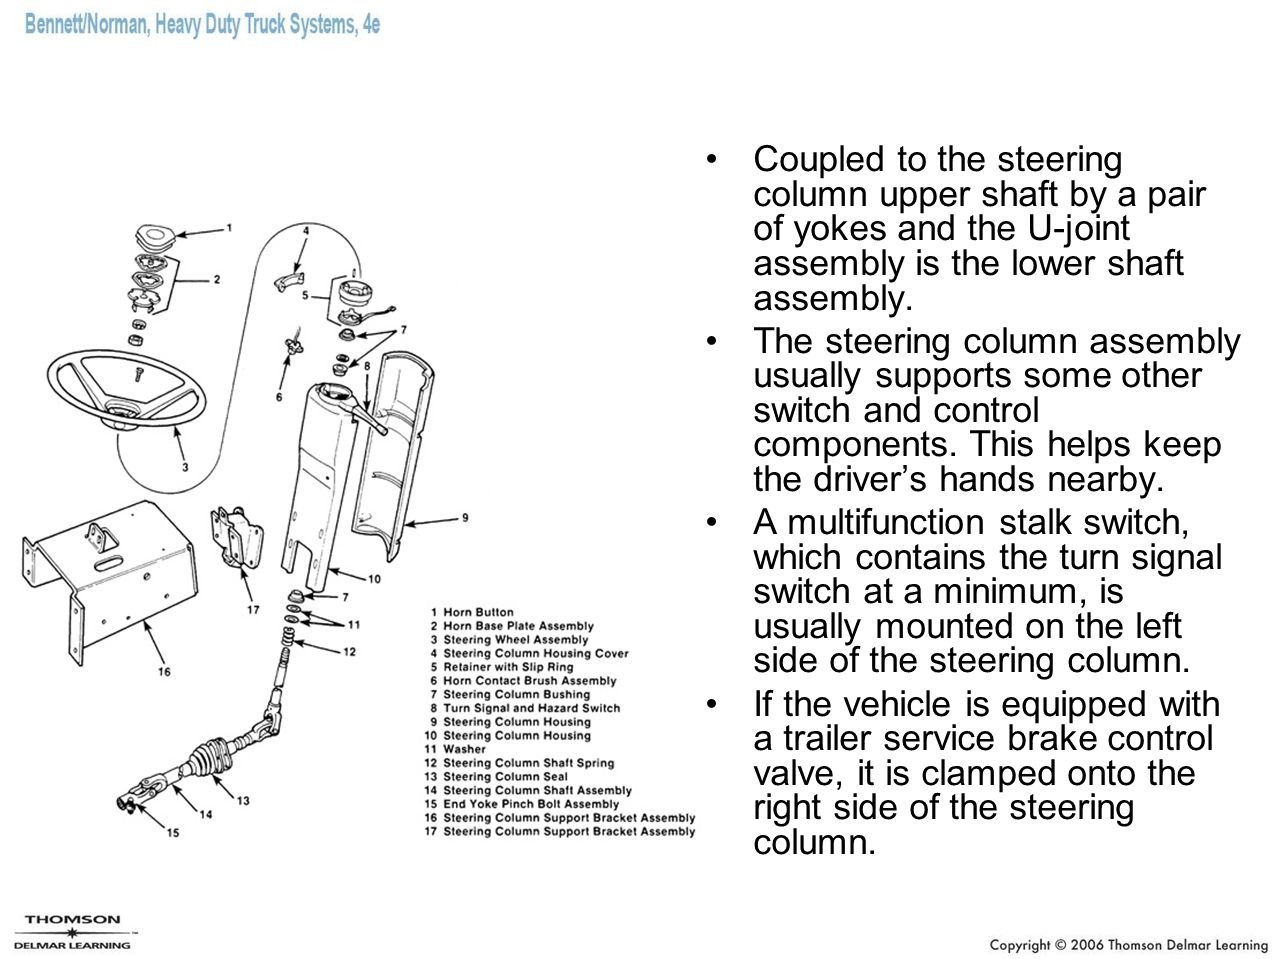 Coupled to the steering column upper shaft by a pair of yokes and the U-joint assembly is the lower shaft assembly.